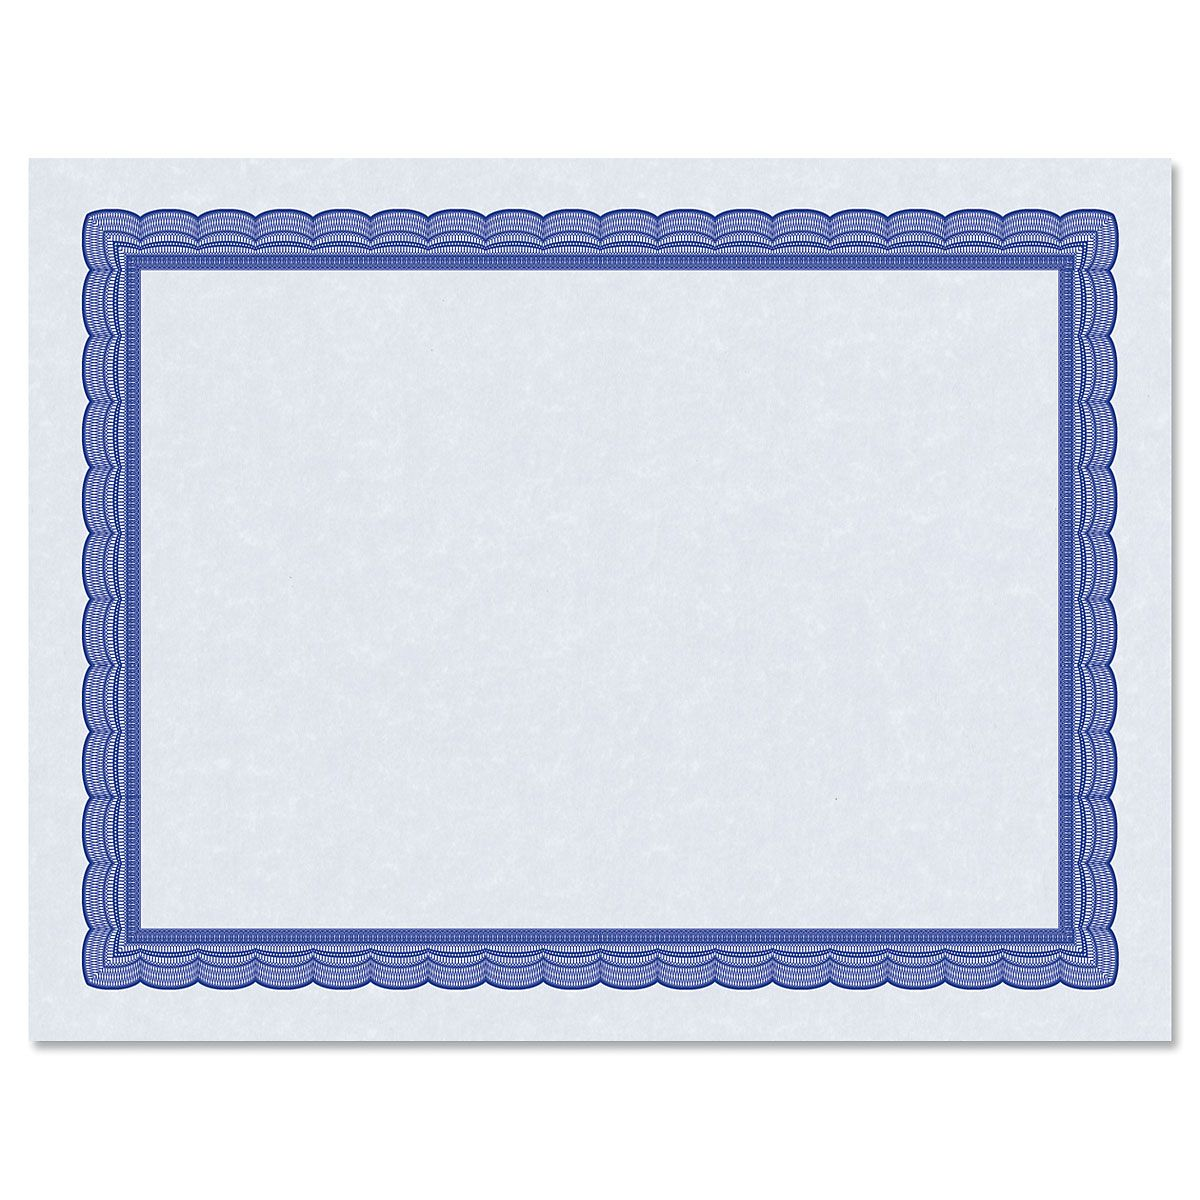 Executive Blue Certificate on Blue Parchment